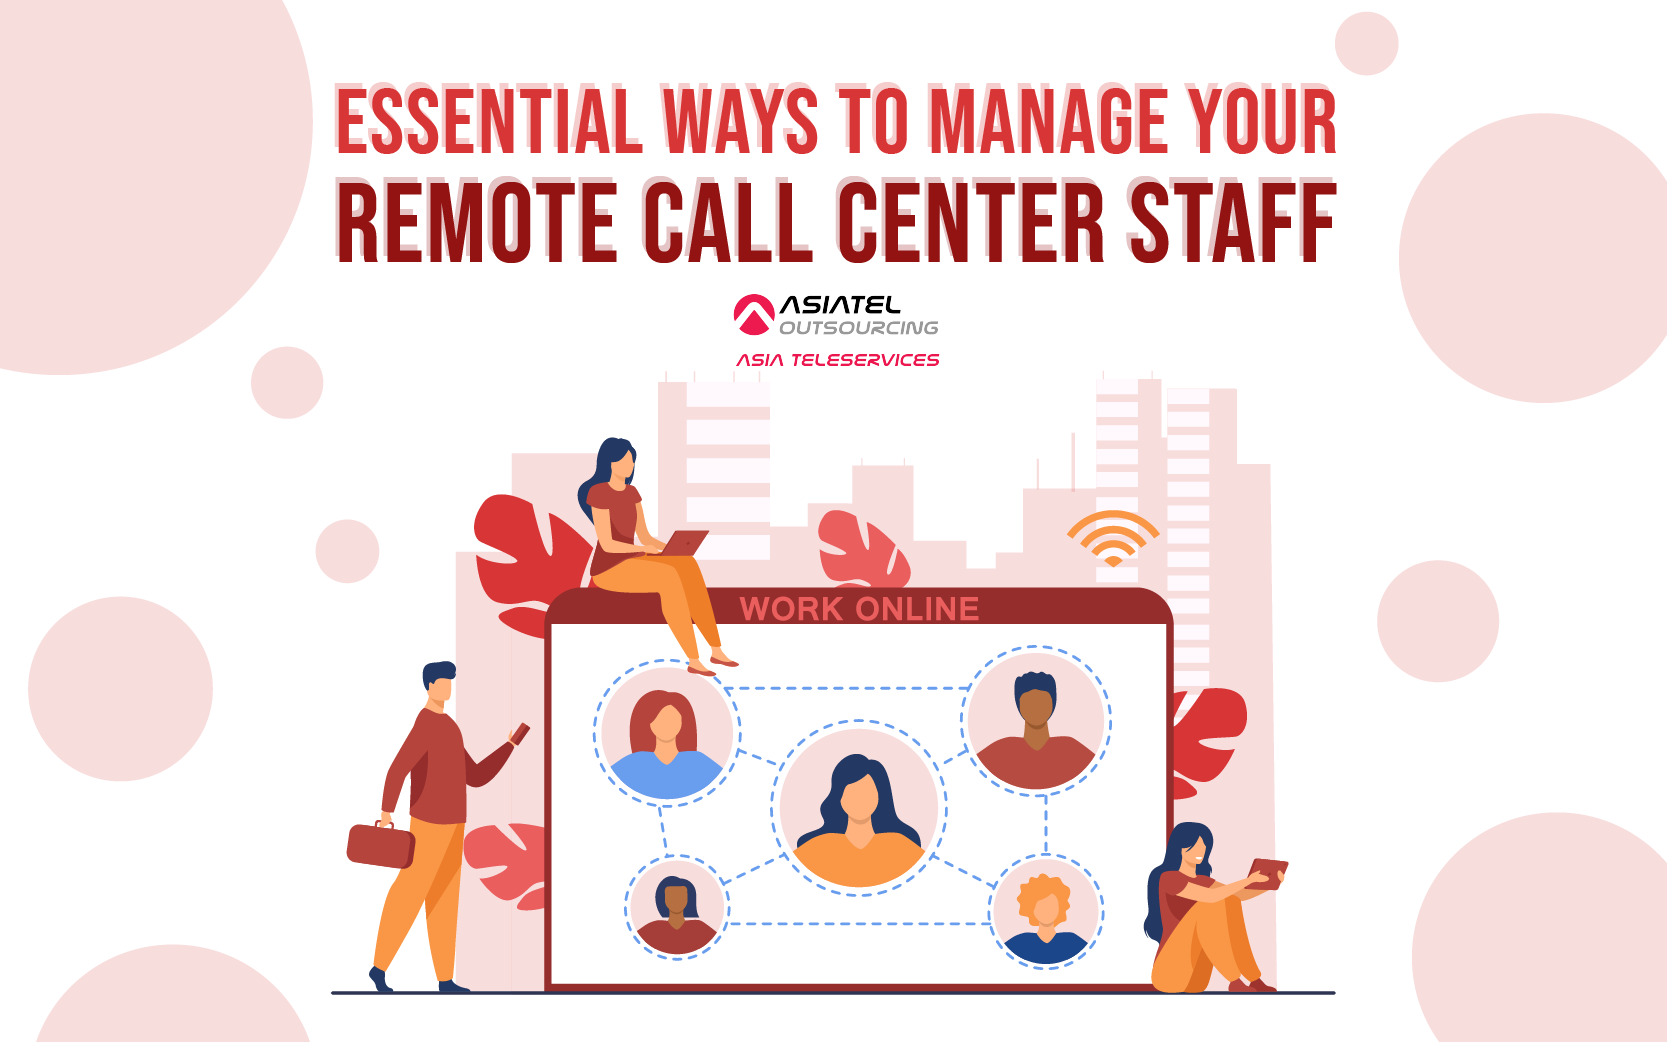 Essential Ways to Manage Your Remote Call Center Staff